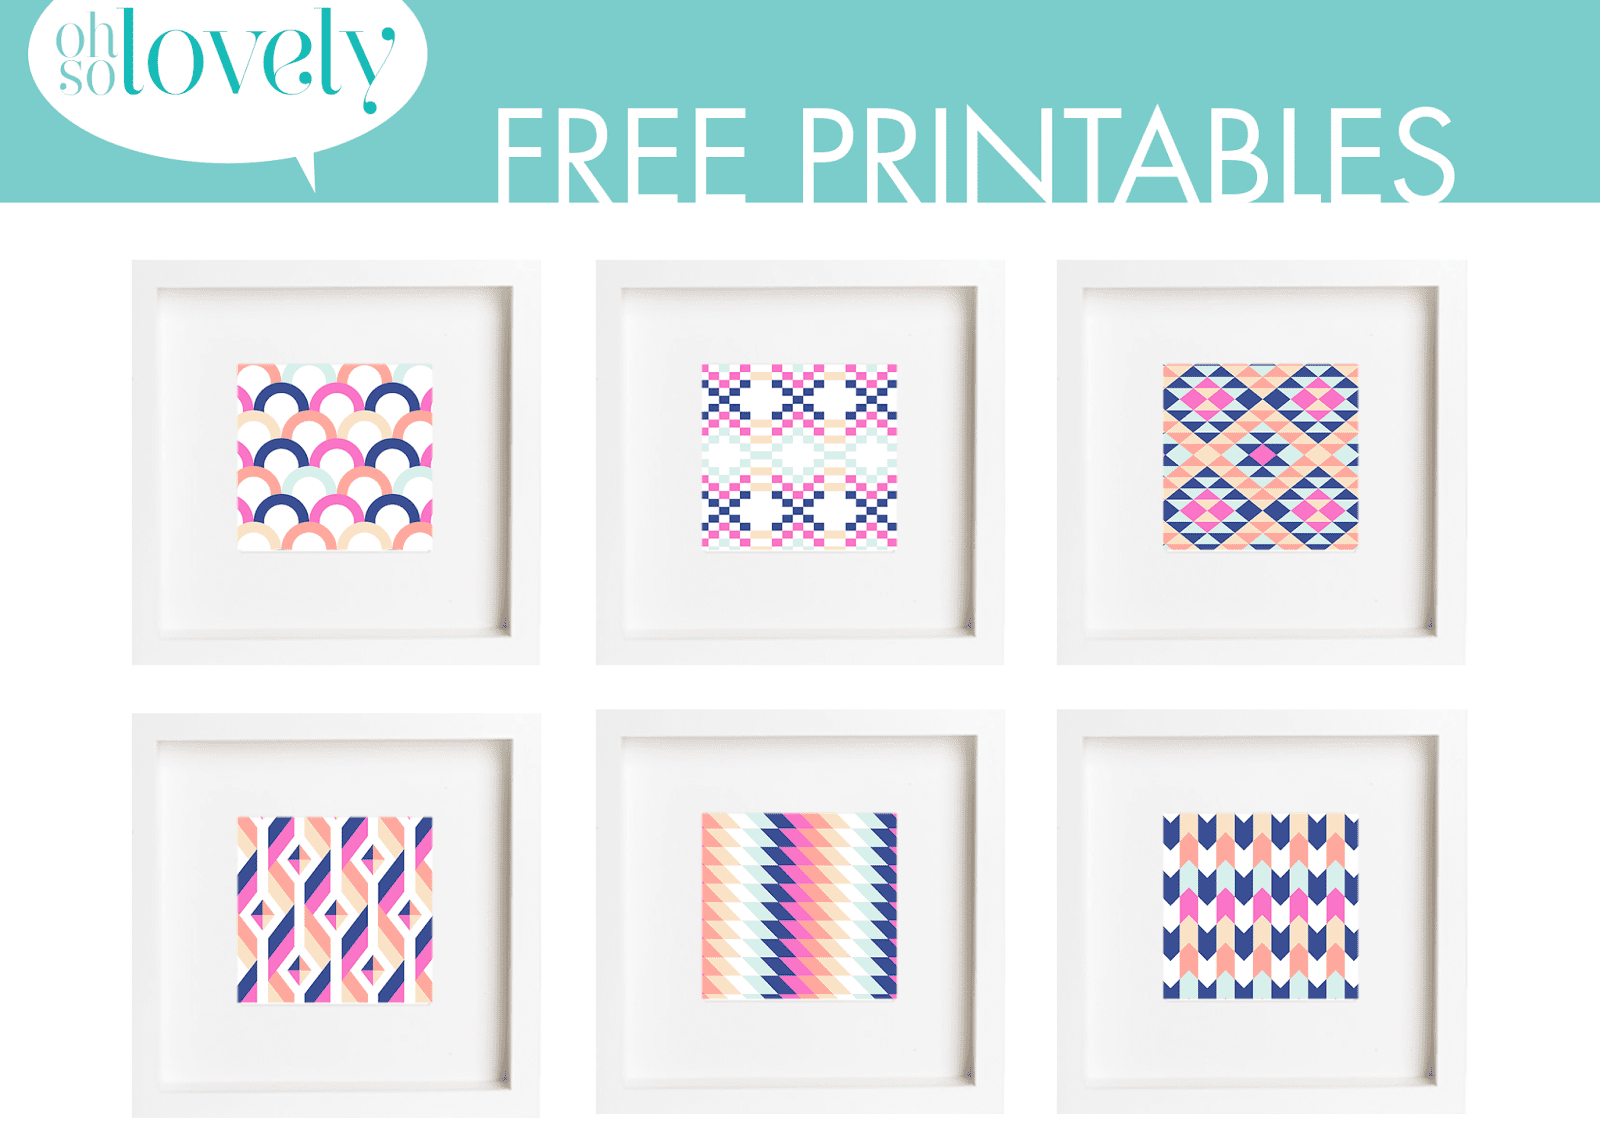 11 Places To Find Free, Printable Wall Art Online - Free Printable Wall Decor